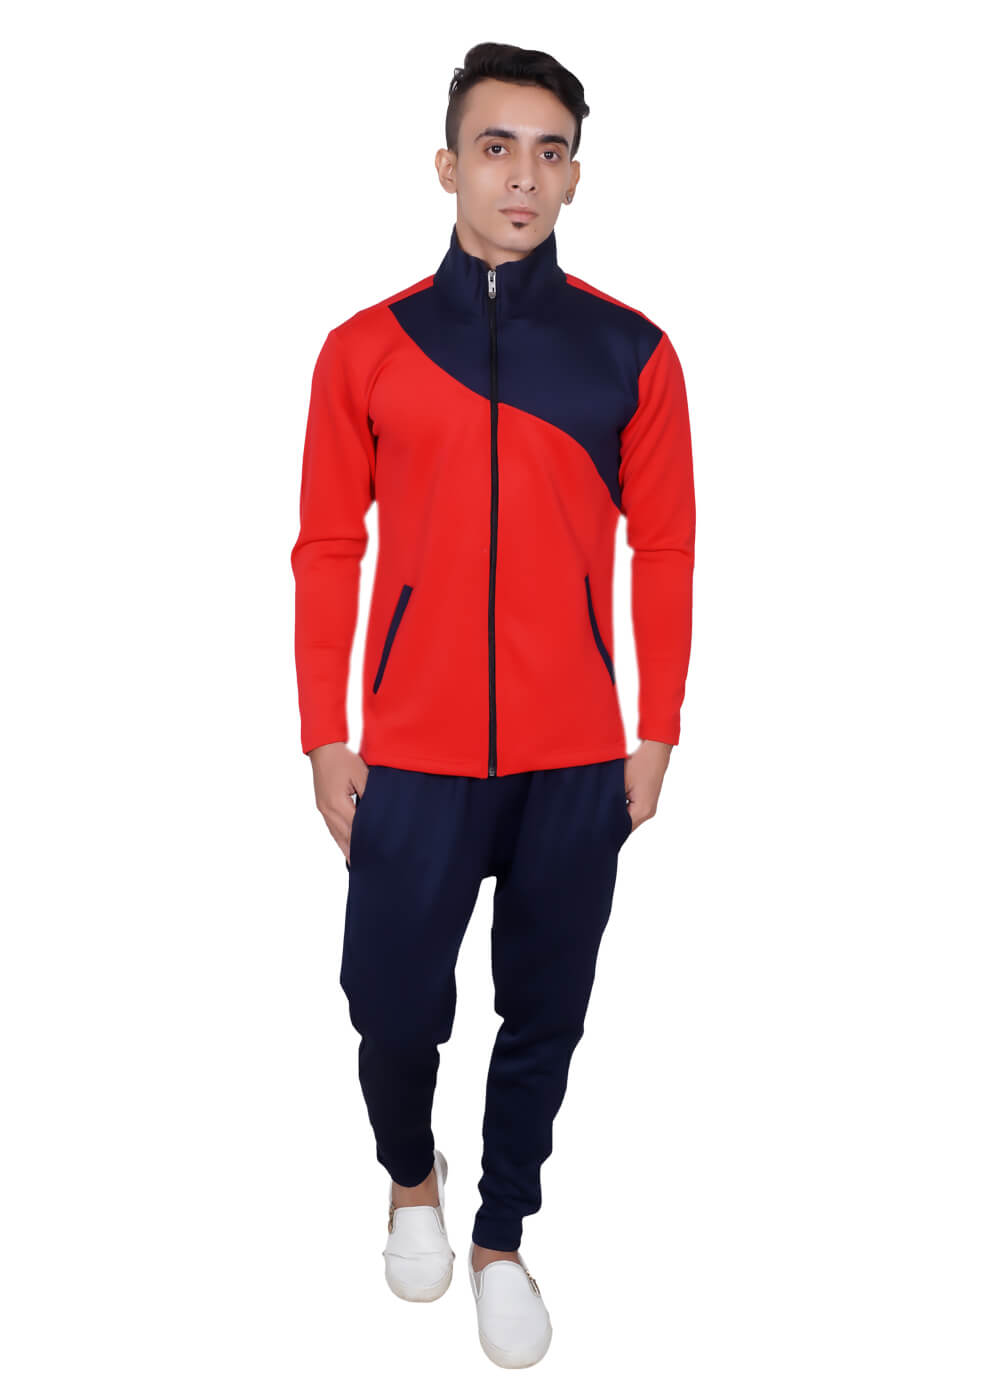 Cheap Tracksuits Manufacturers in Noida